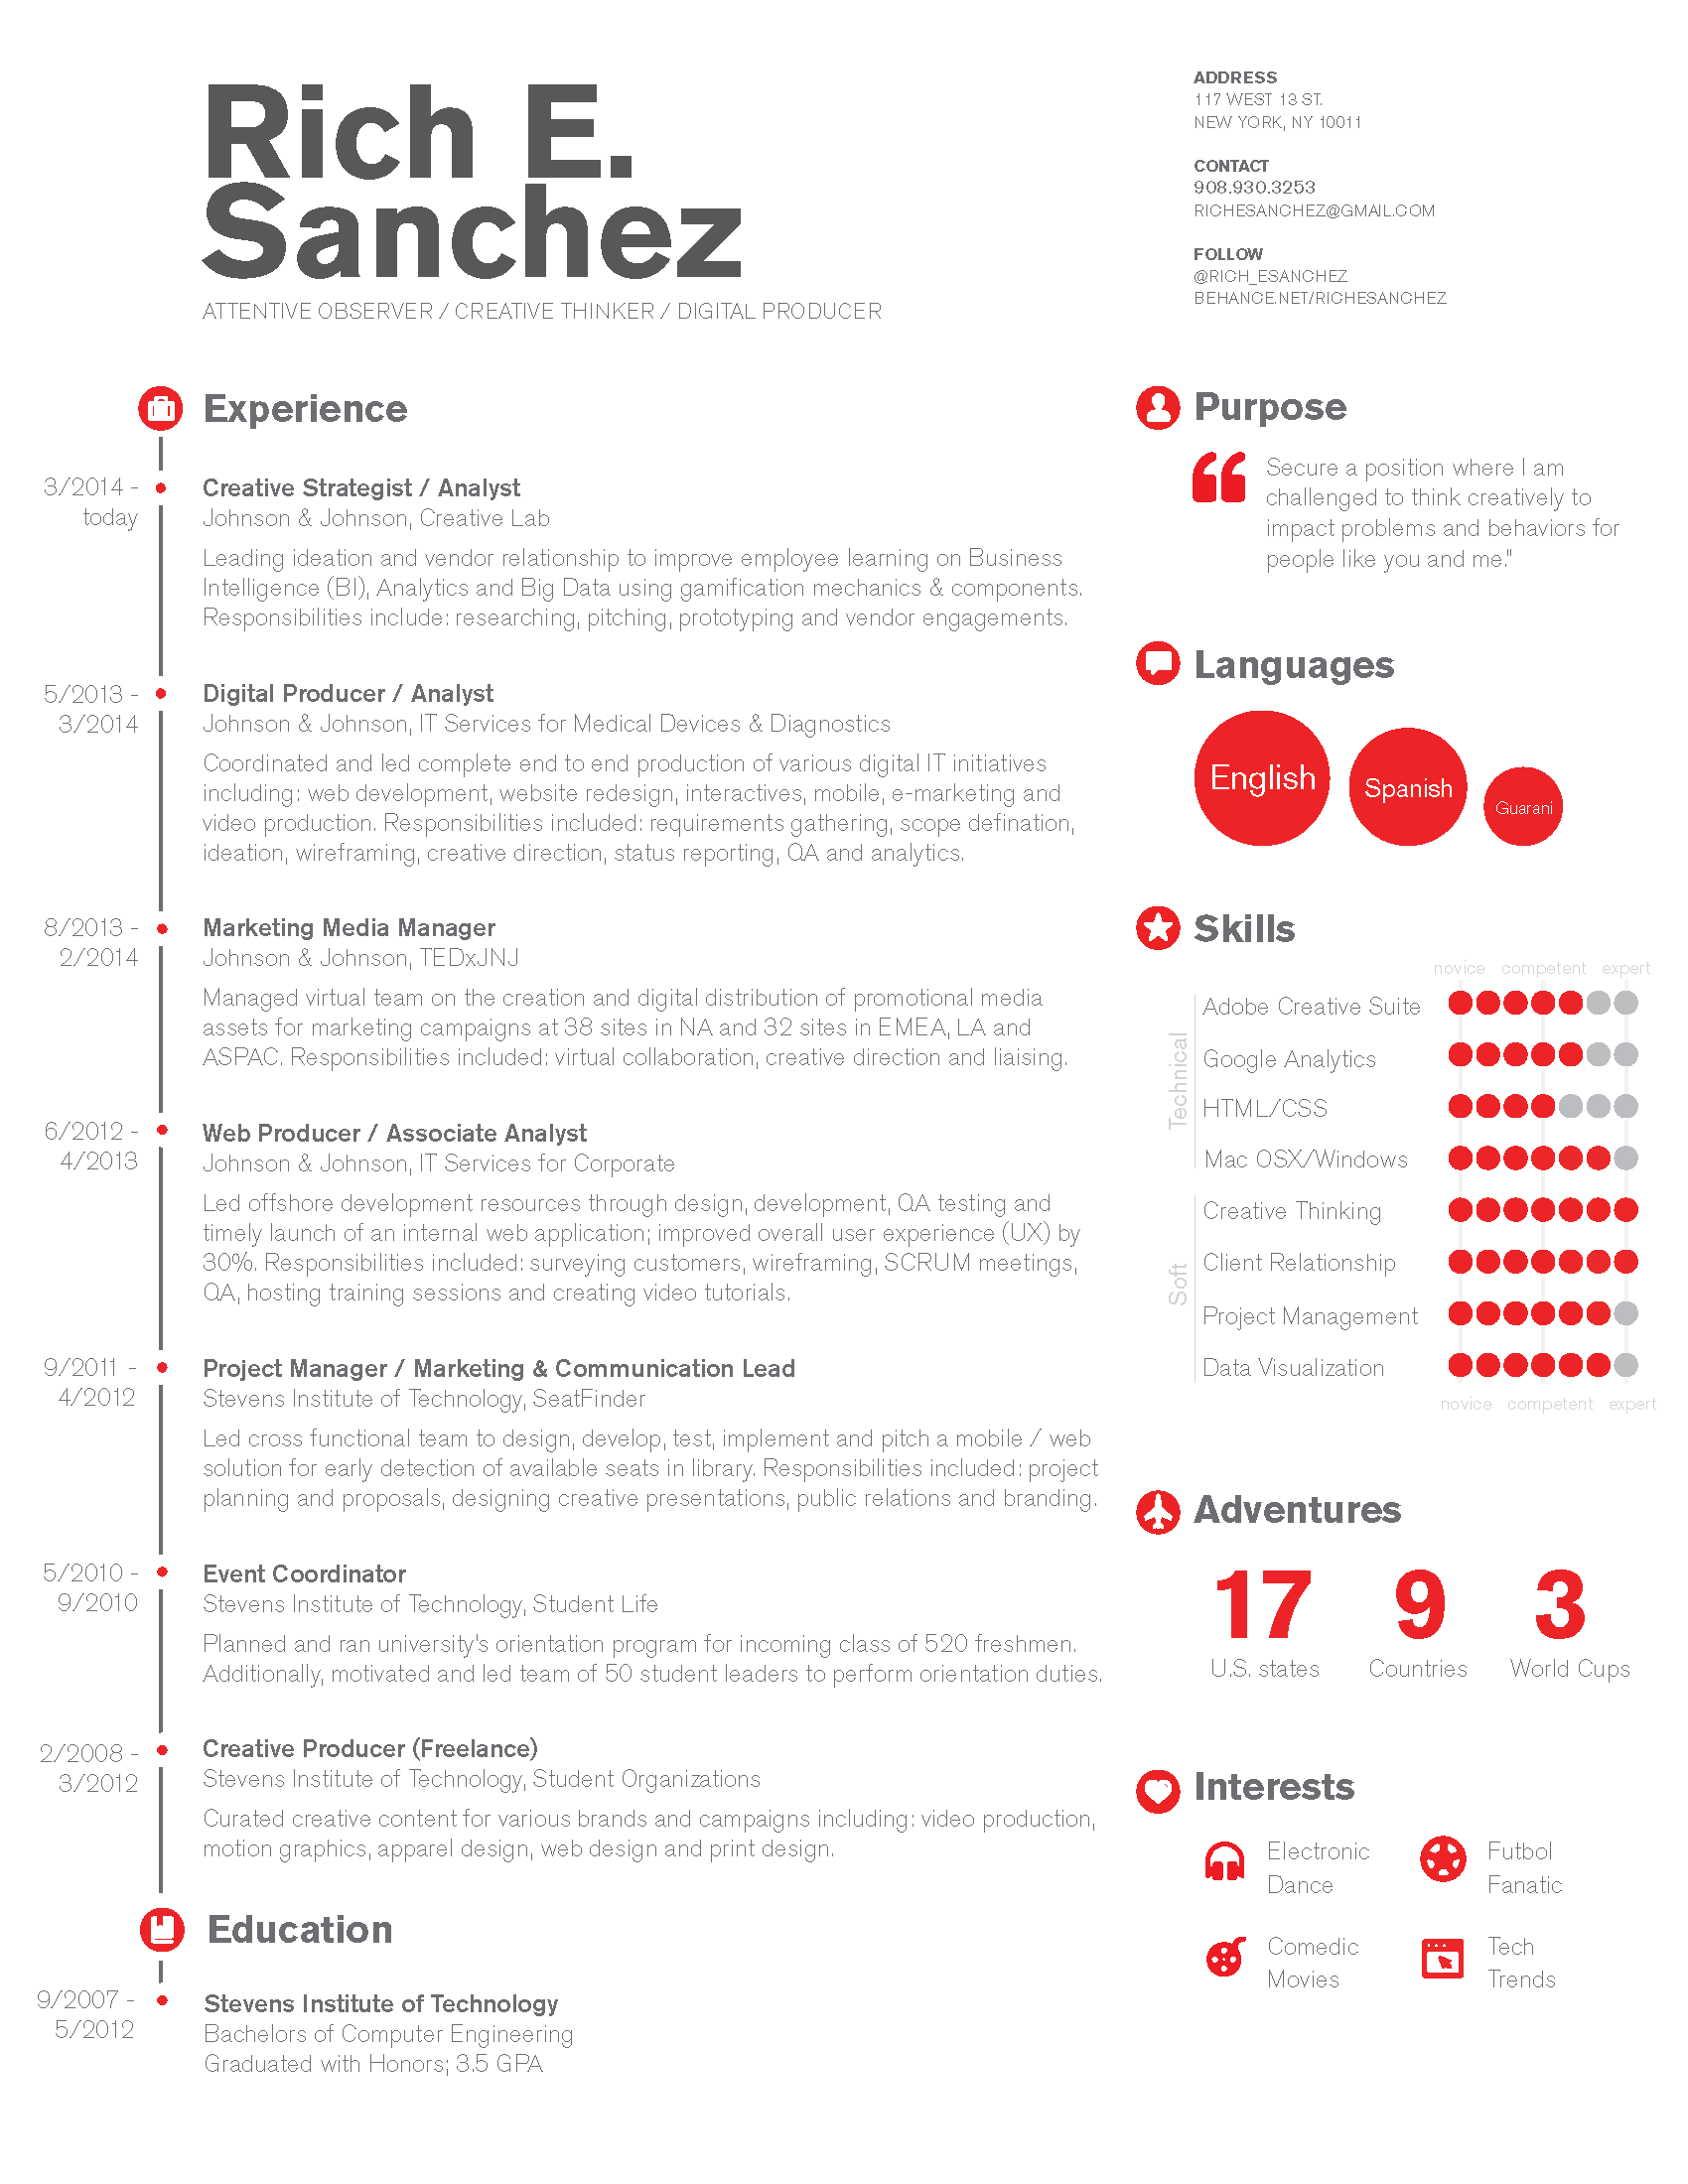 Simple Clean Infographic Timeline Resume Design For Digital - Timeline resume template